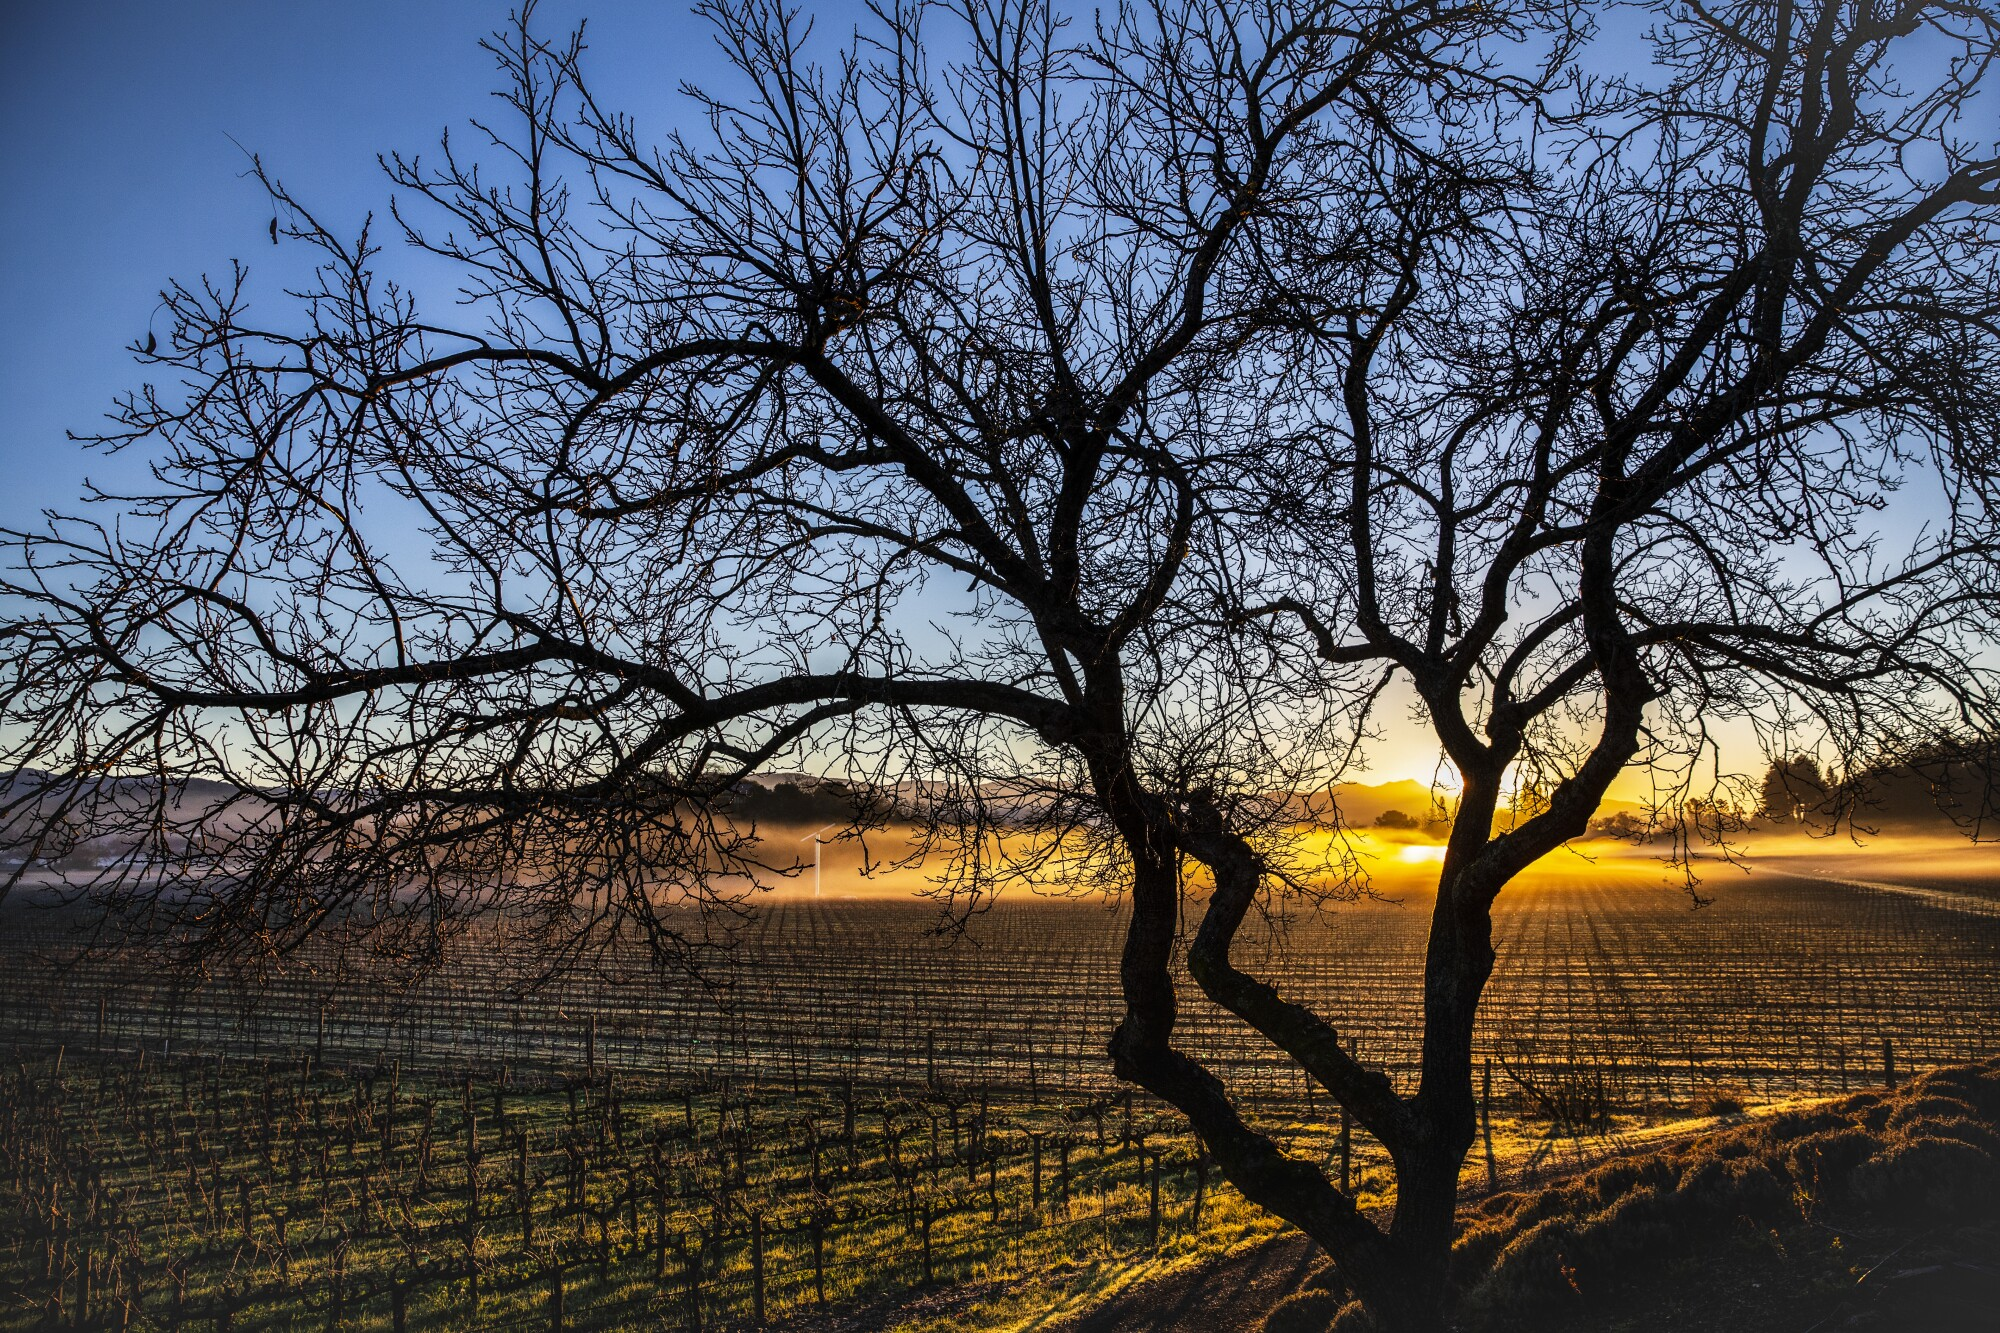 Morning light spreads over a vineyard